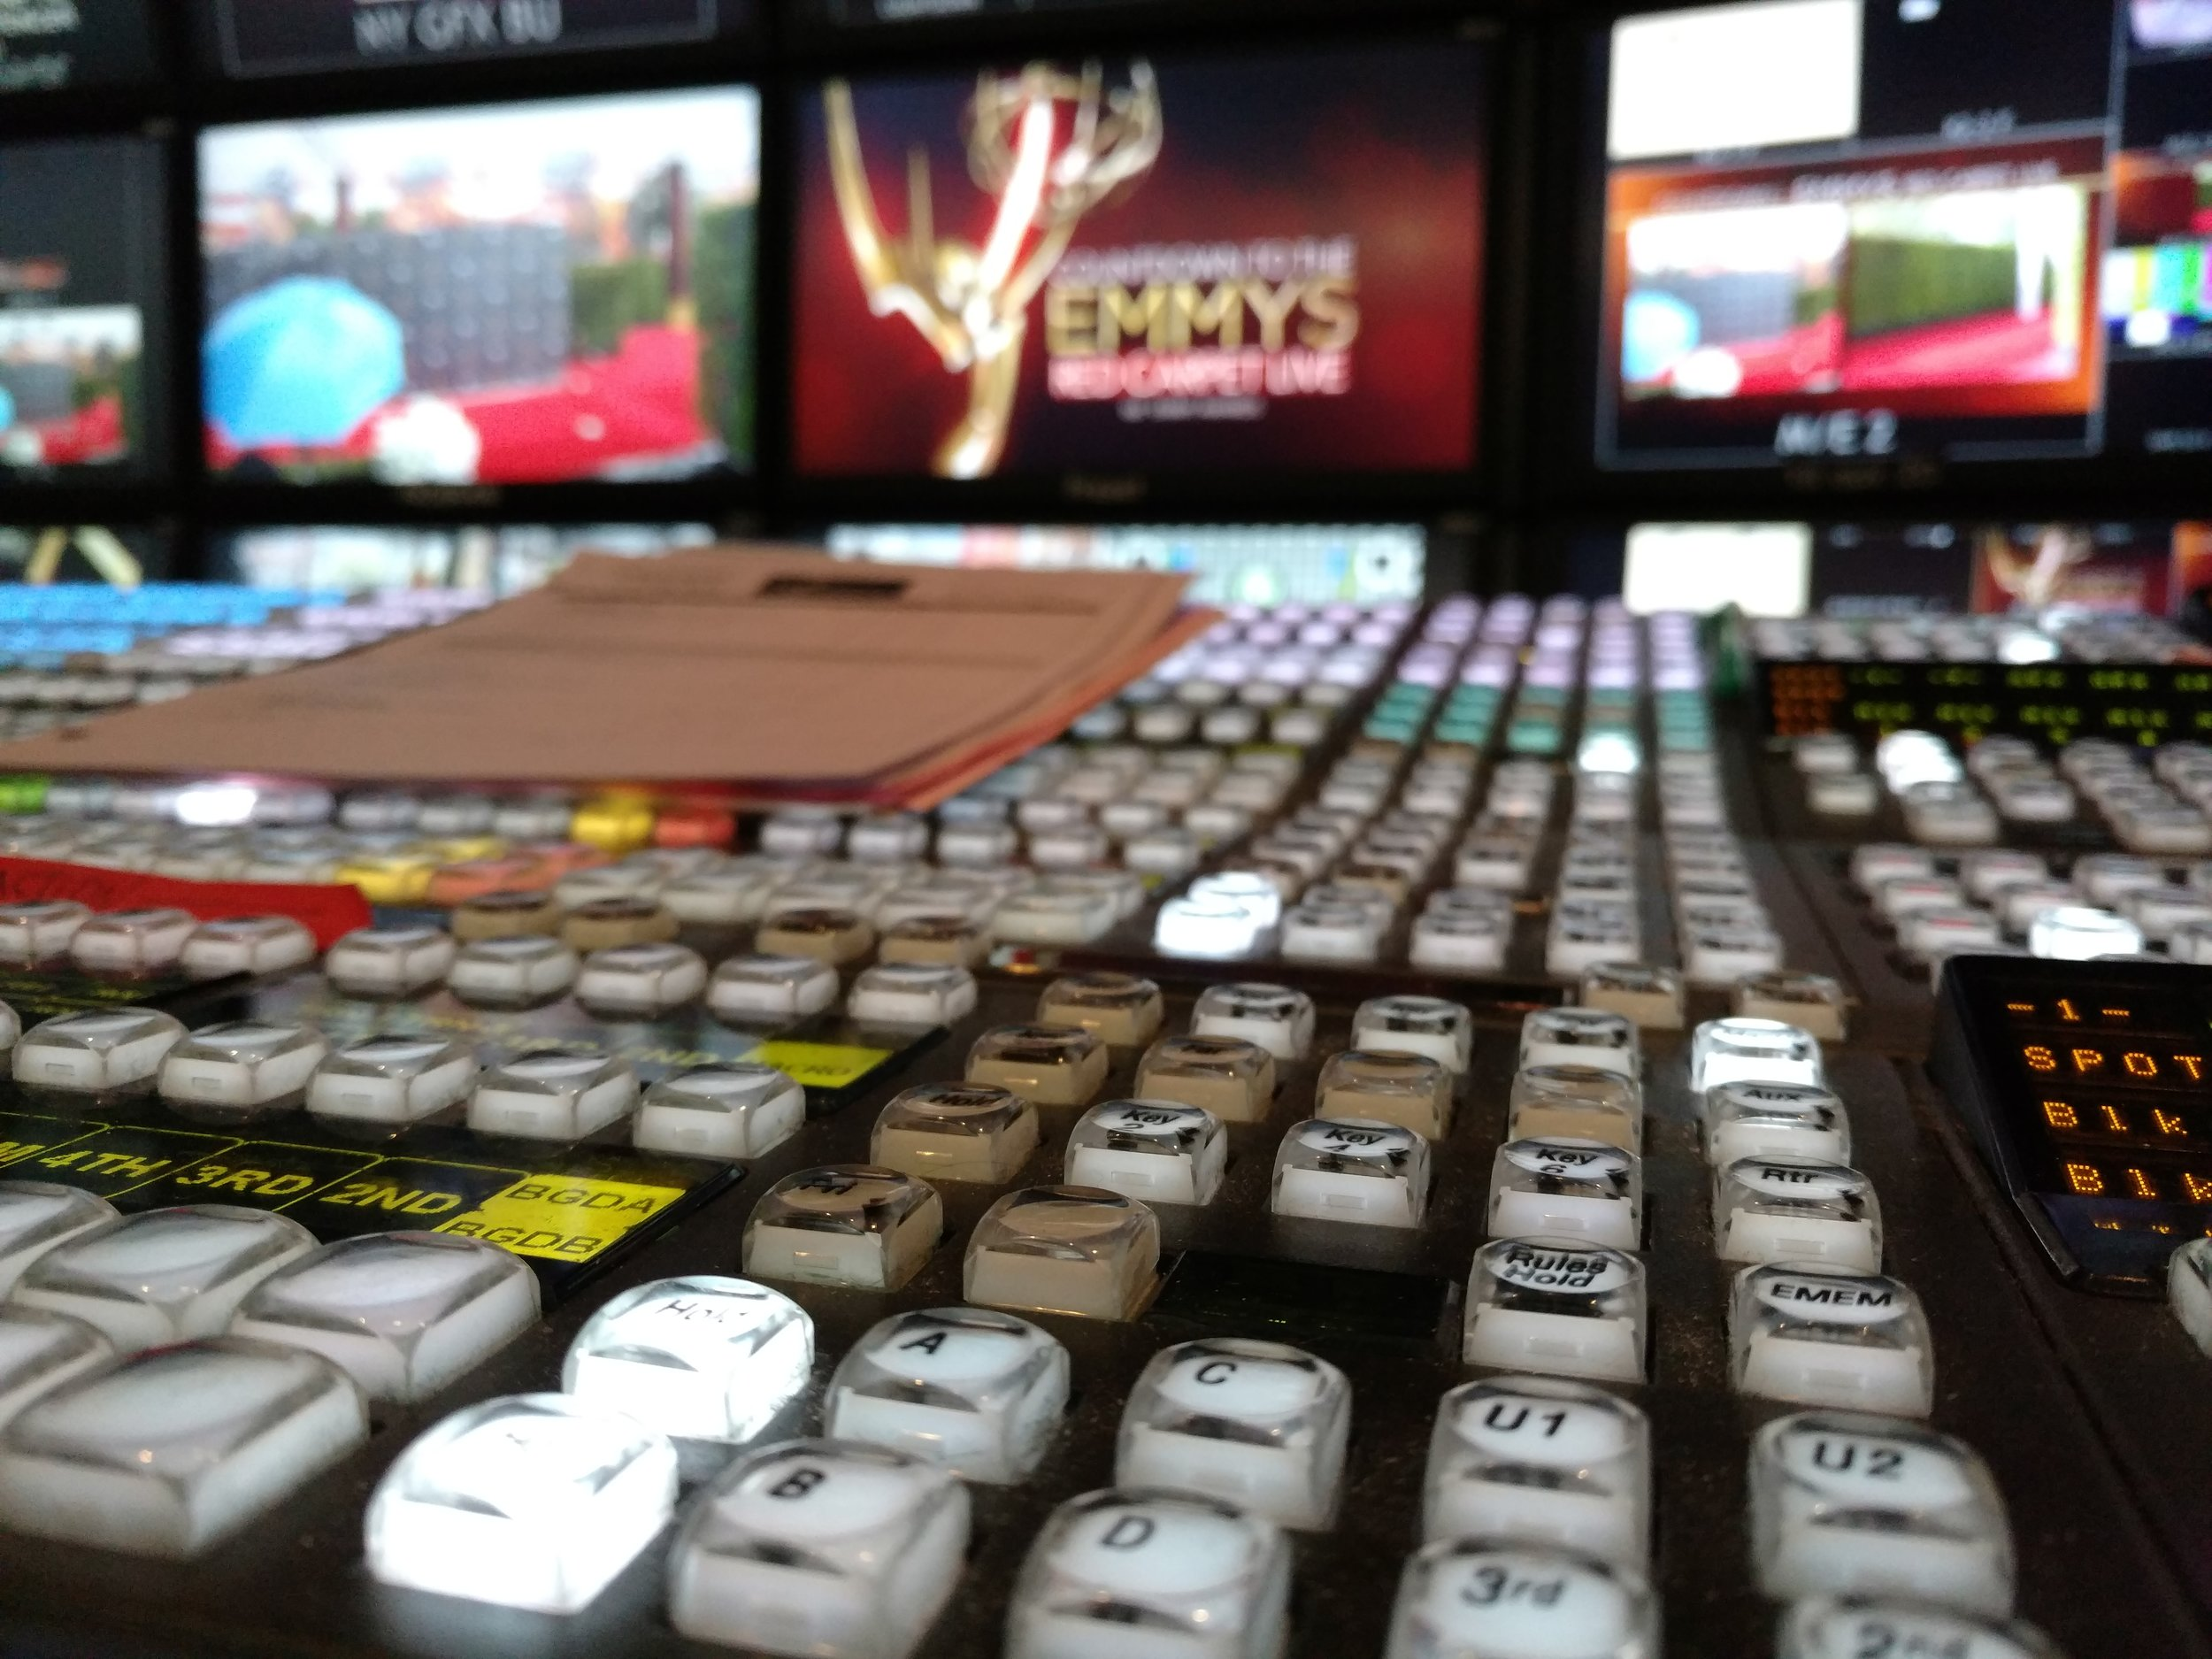 Countdown to the Emmys, Red Carpet Live -   Inside NEP's Red/Black mobile unit